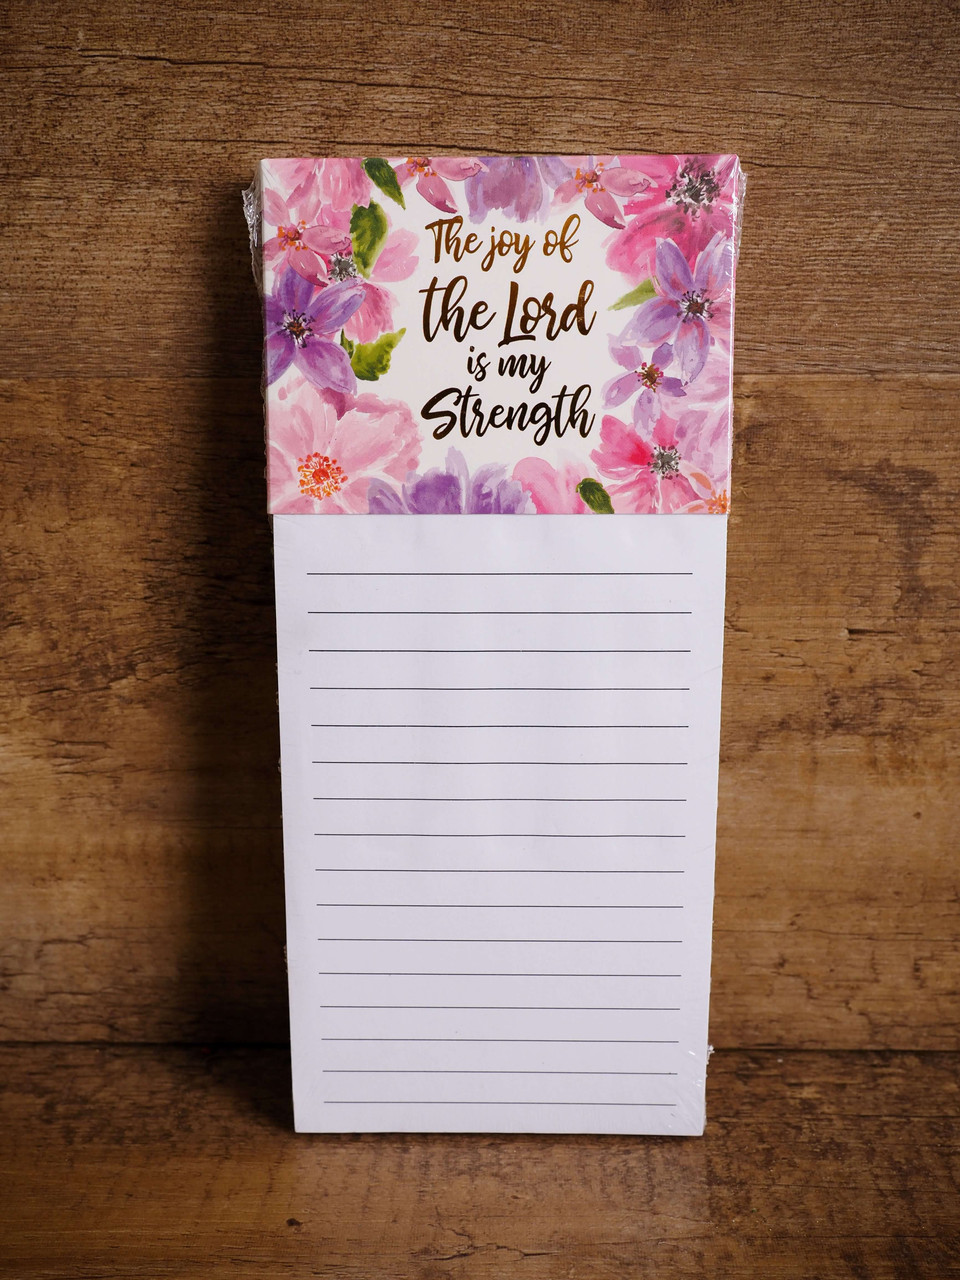 Inspirational Magnetic Notepad- The joy of the Lord is my Strength.